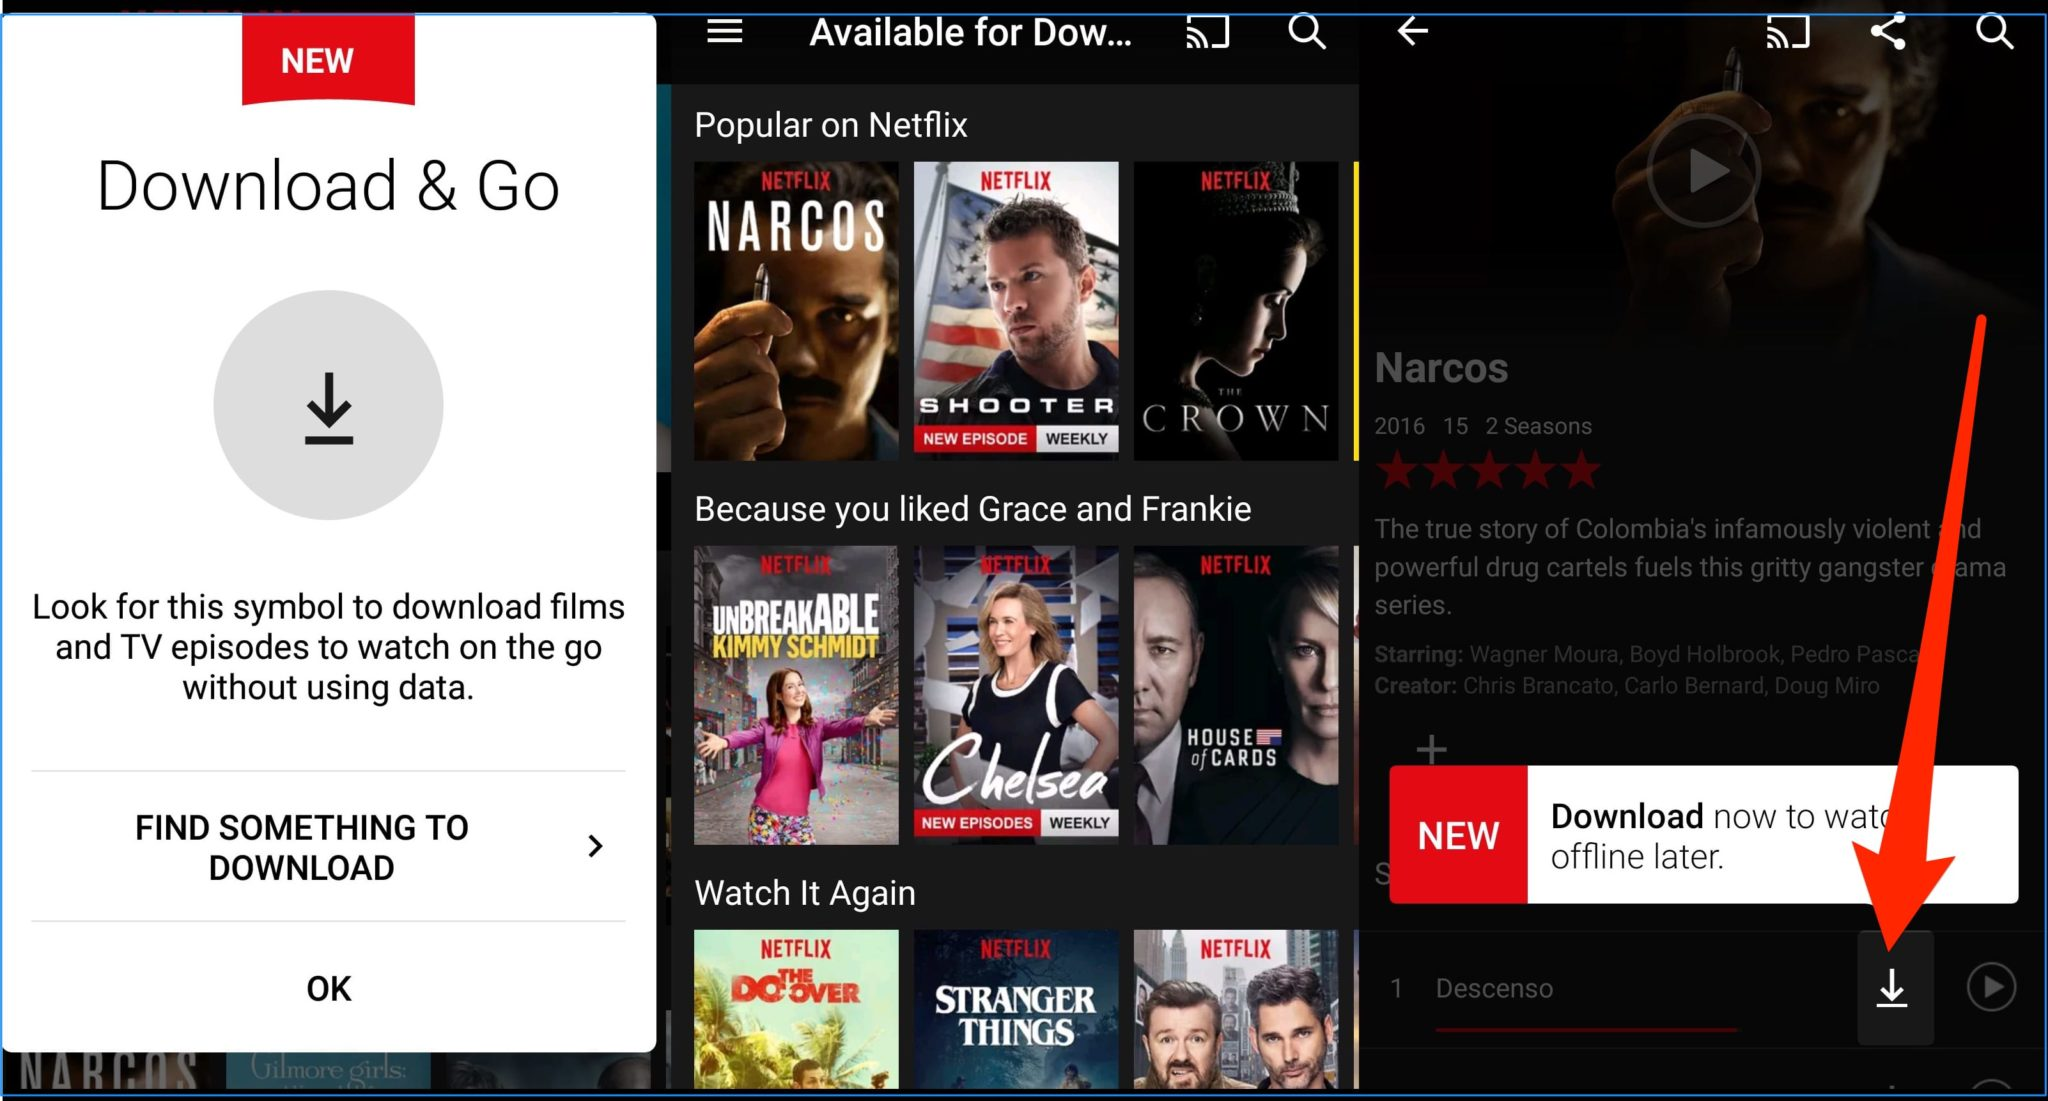 20 Free Movie Download Apps for Android (Sept. 2020)